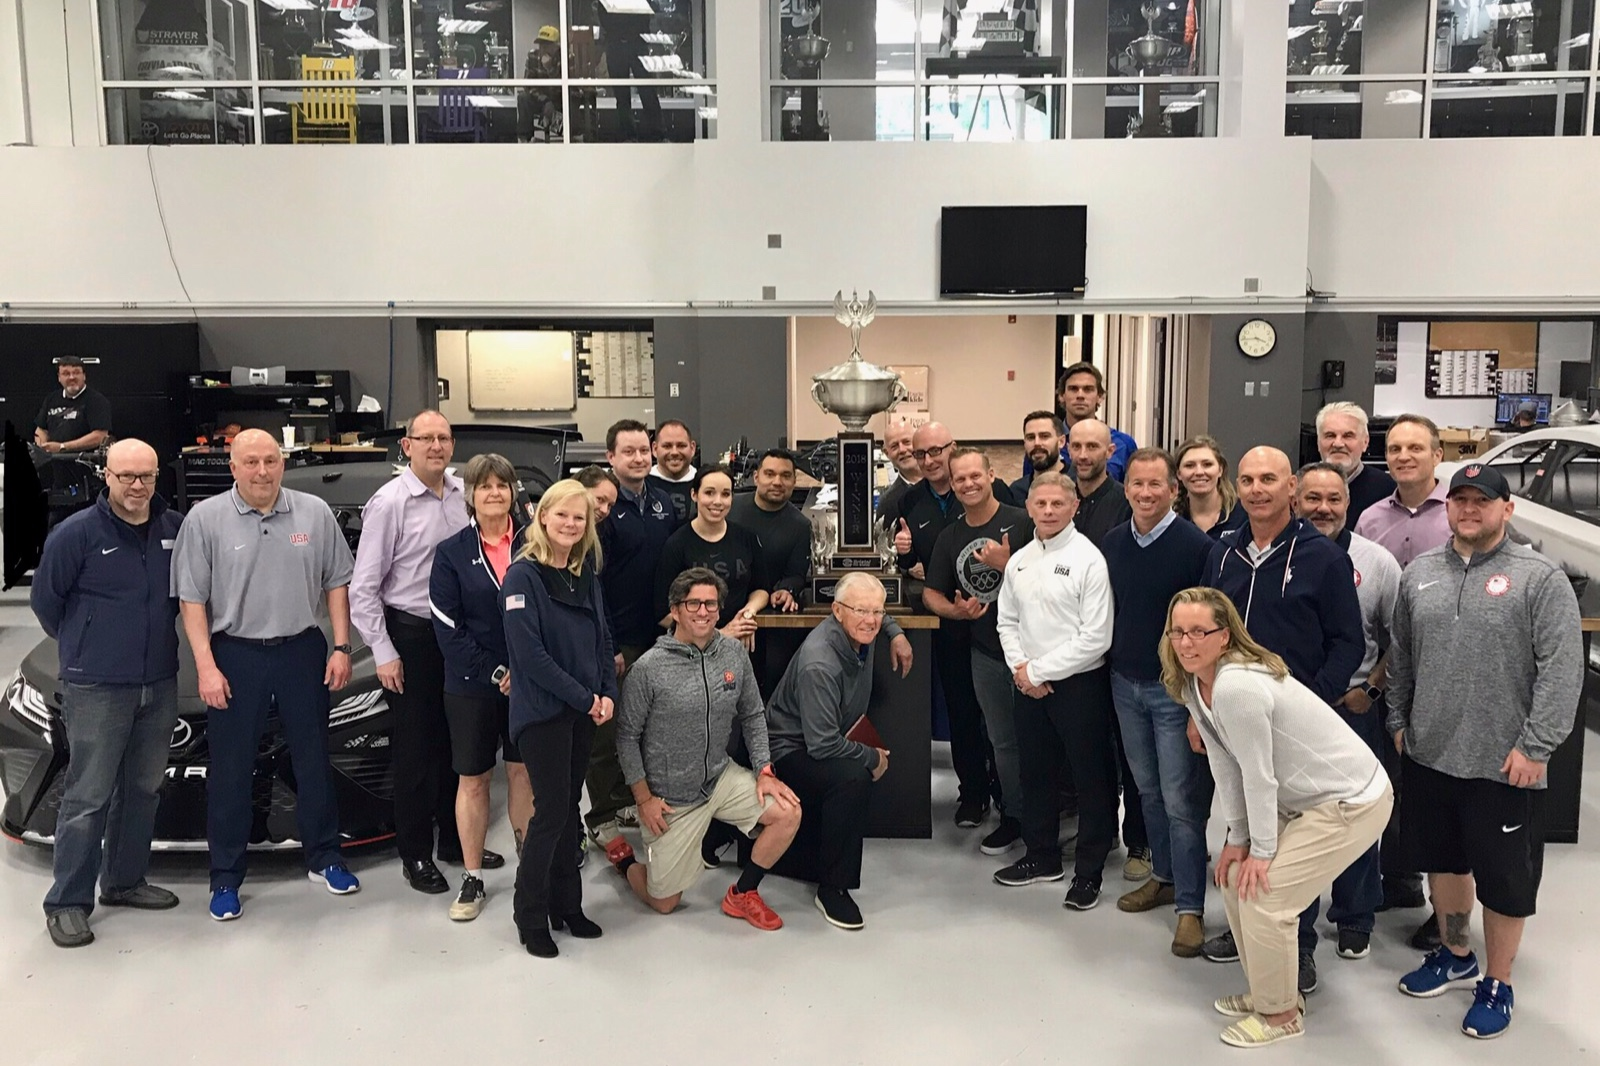 NASCAR's Joe Gibbs Racing in Charlotte, North Carolina. With our partners from USOC delivering the National Team Coach Leadership Program.